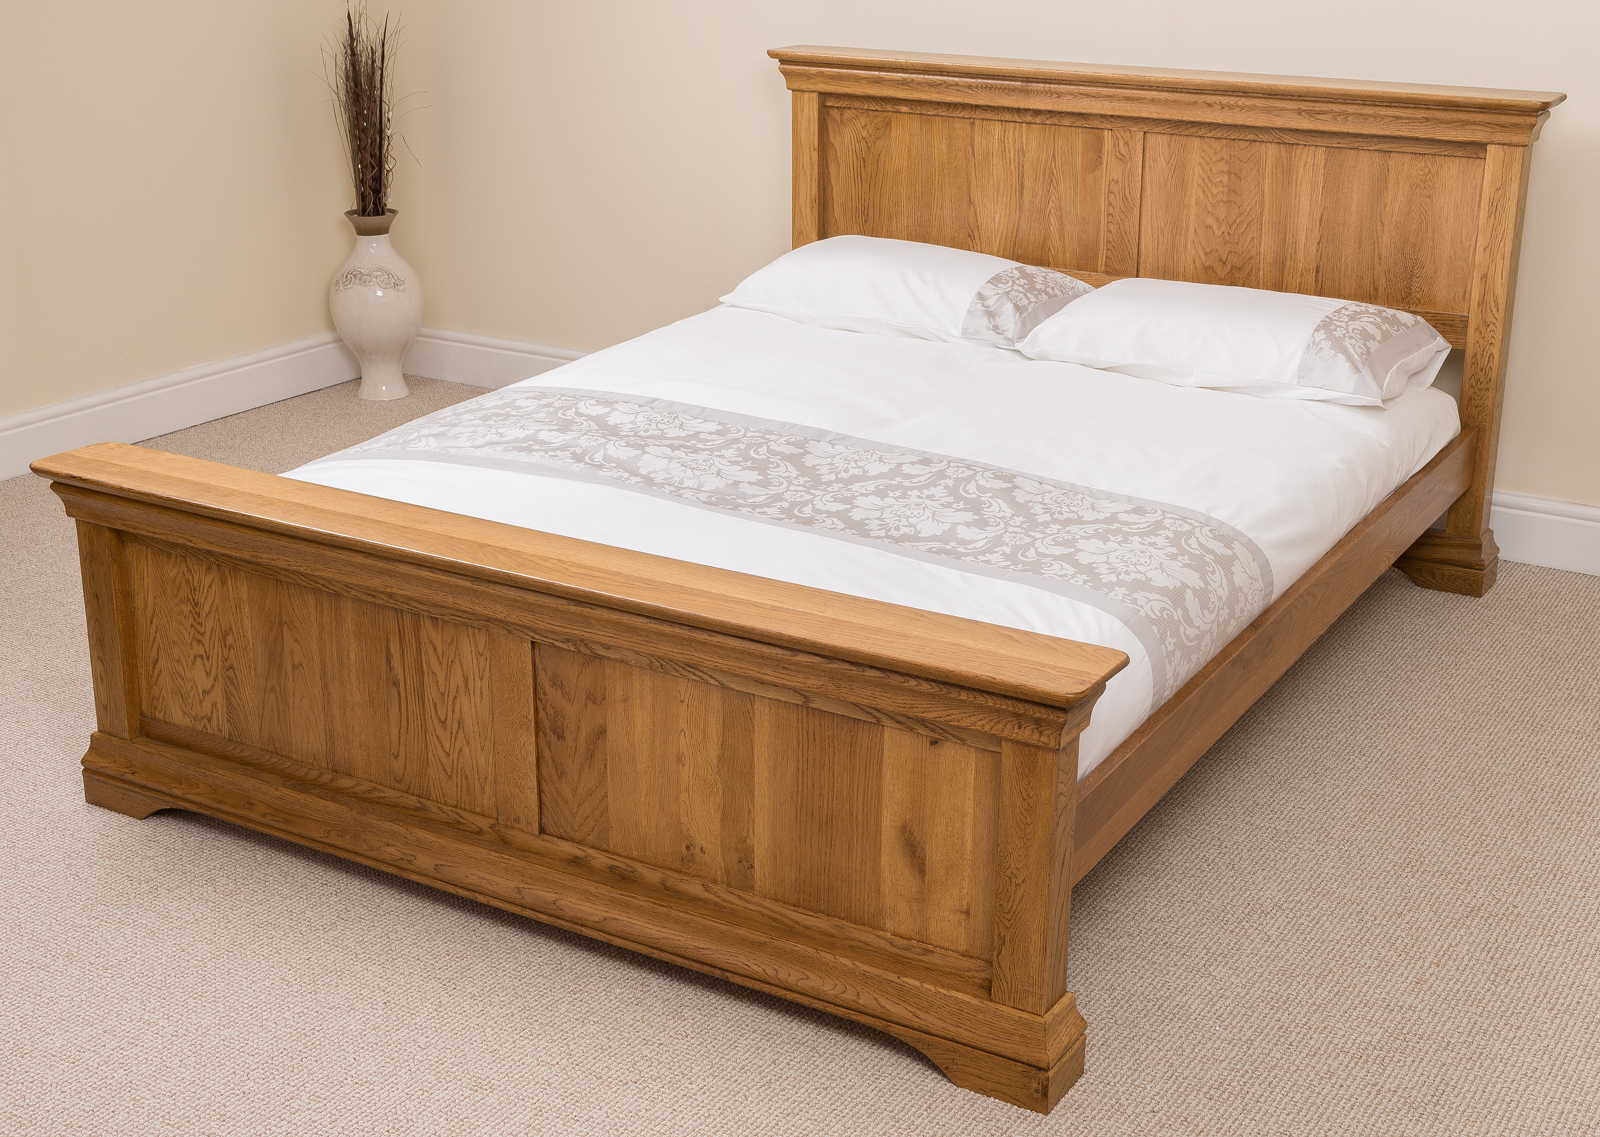 FRENCH RUSTIC SOLID OAK WOOD SUPER KING SIZE BED FRAME BEDROOM FURNITURE EBay